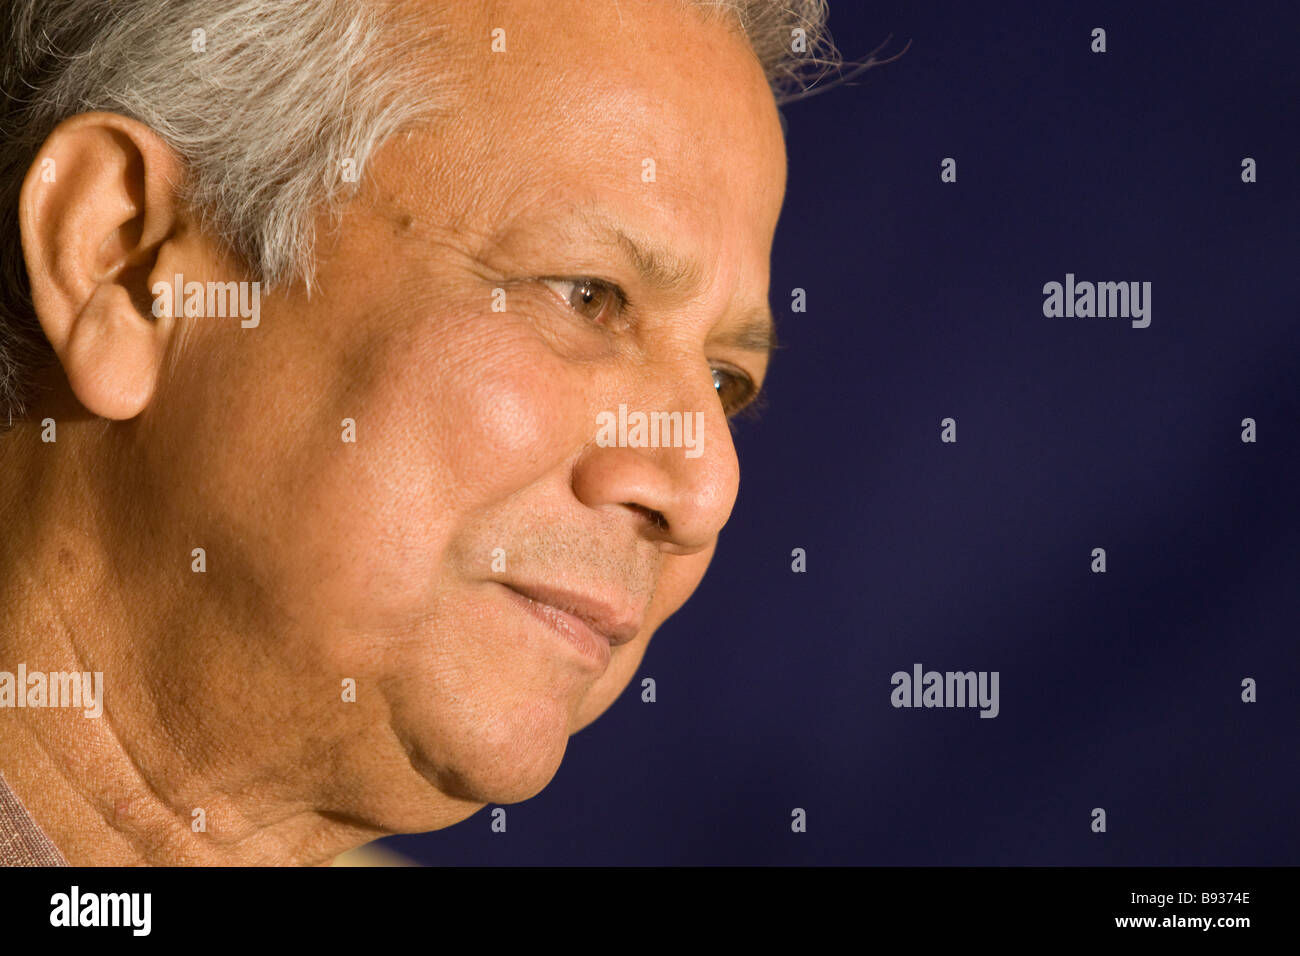 Dr Muhammad Yunus, Nobel Peace Prize laureate, and Managing Director of Grameen Bank. - Stock Image